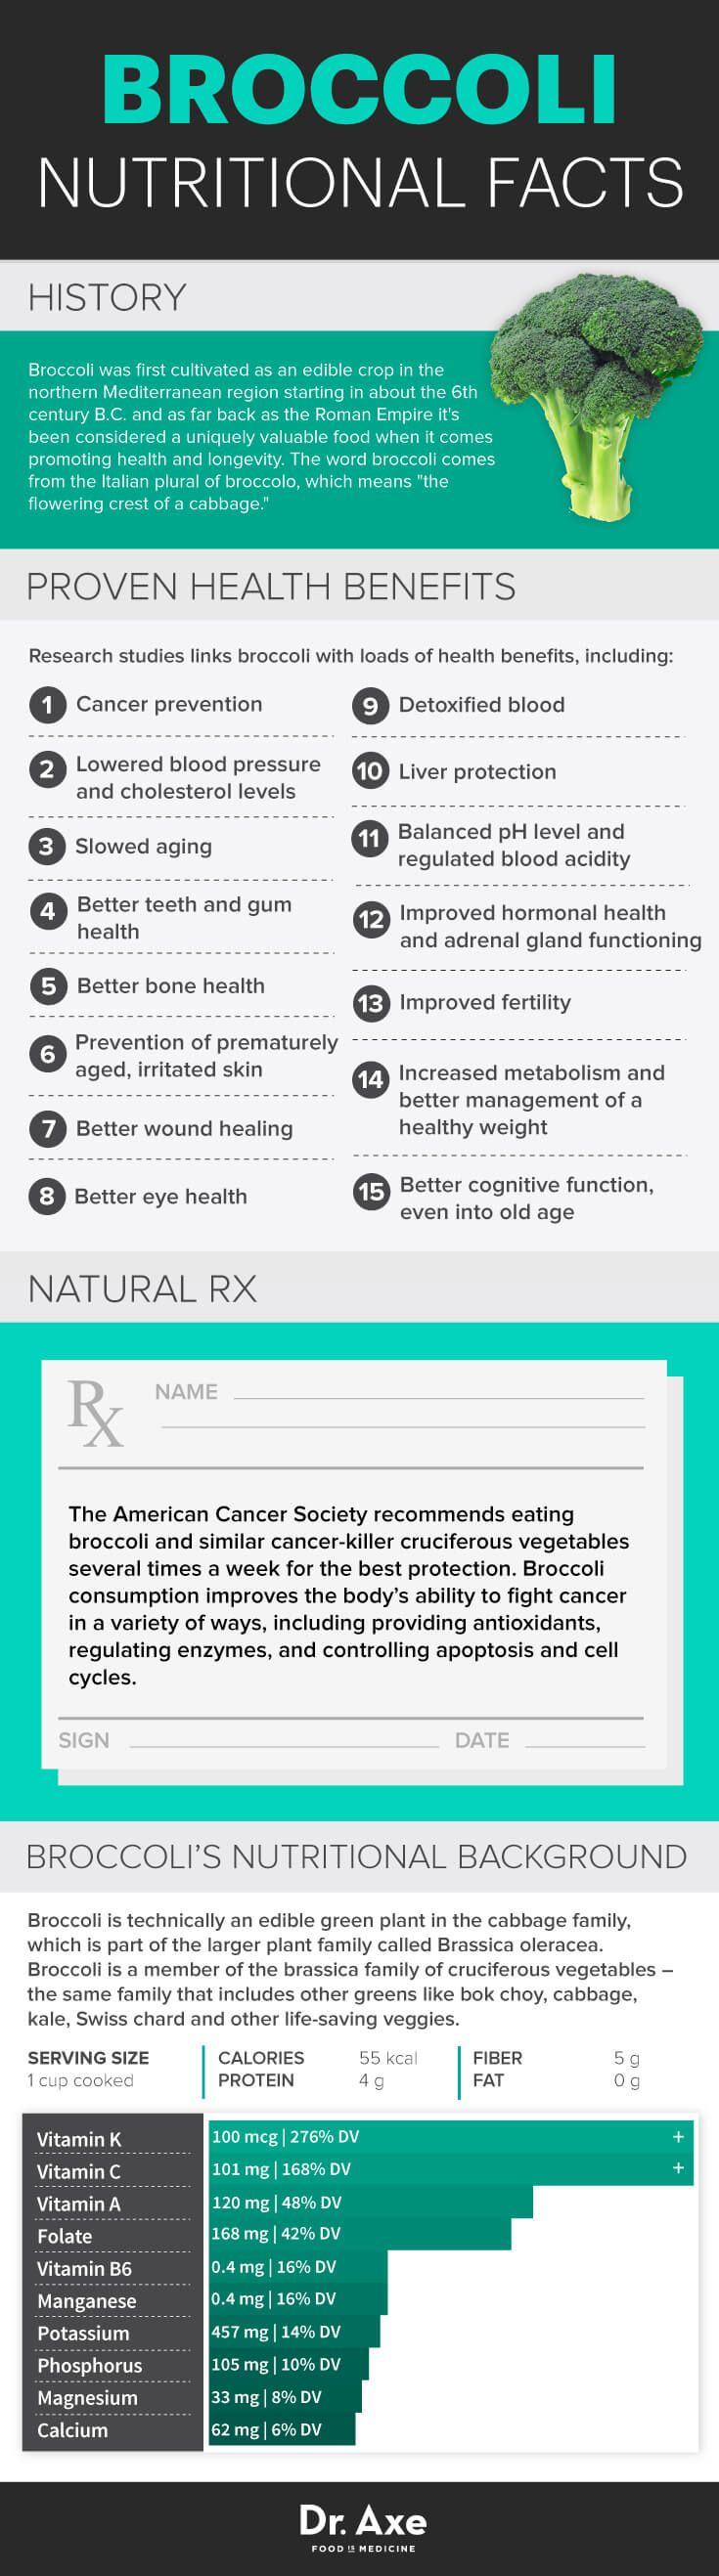 Broccoli nutrition helps your body battle cancer, osteoporosis and weight gain, among other things.